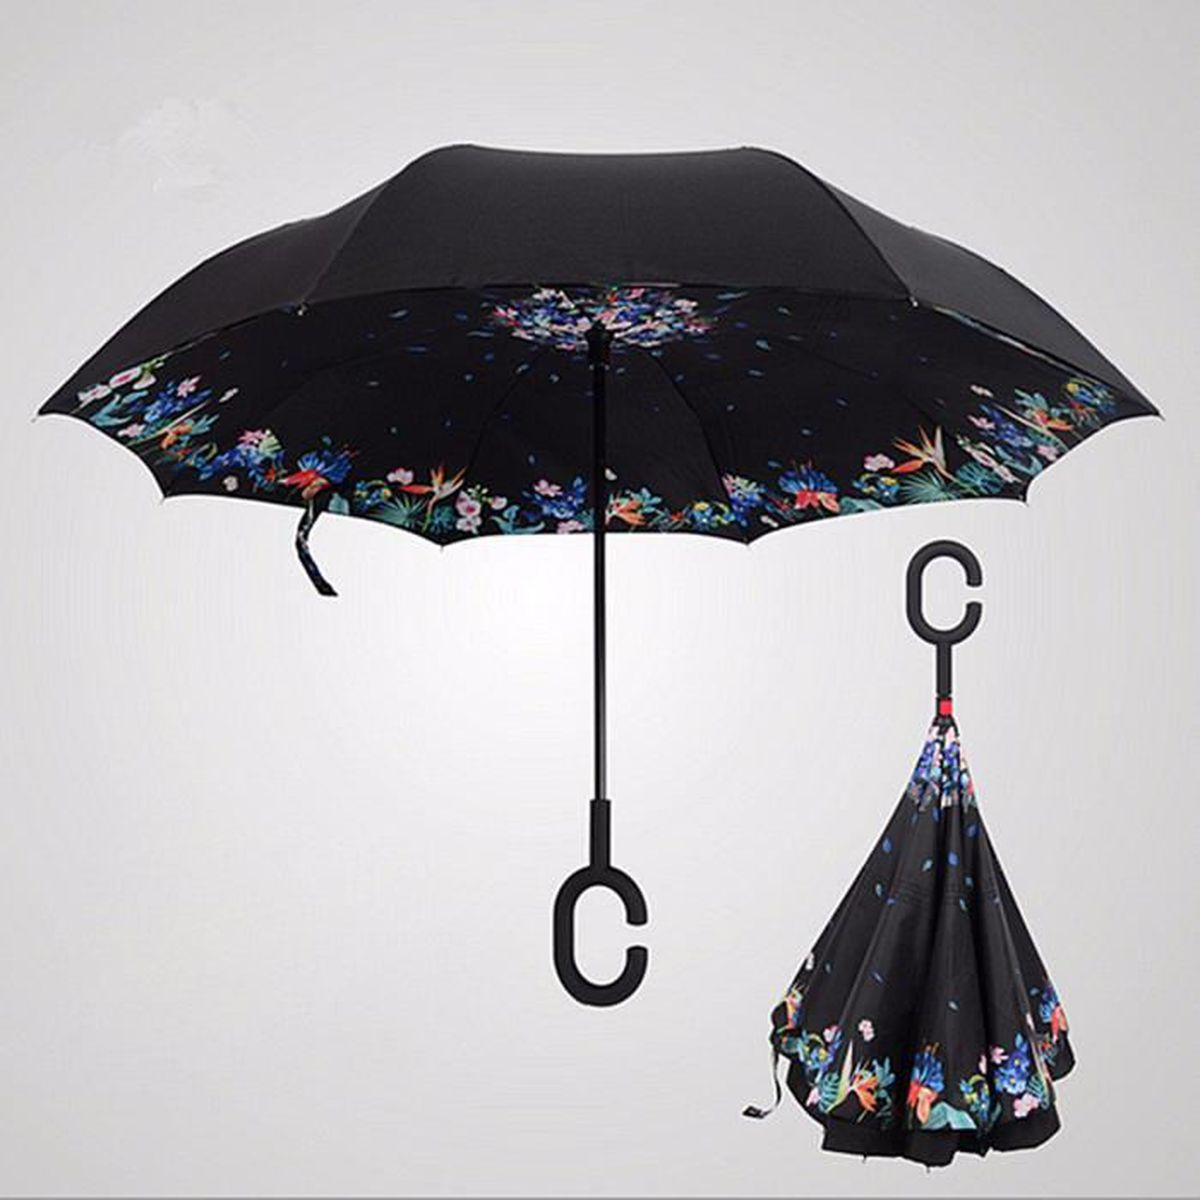 parapluie imprim invers double parasol anti uv vent. Black Bedroom Furniture Sets. Home Design Ideas